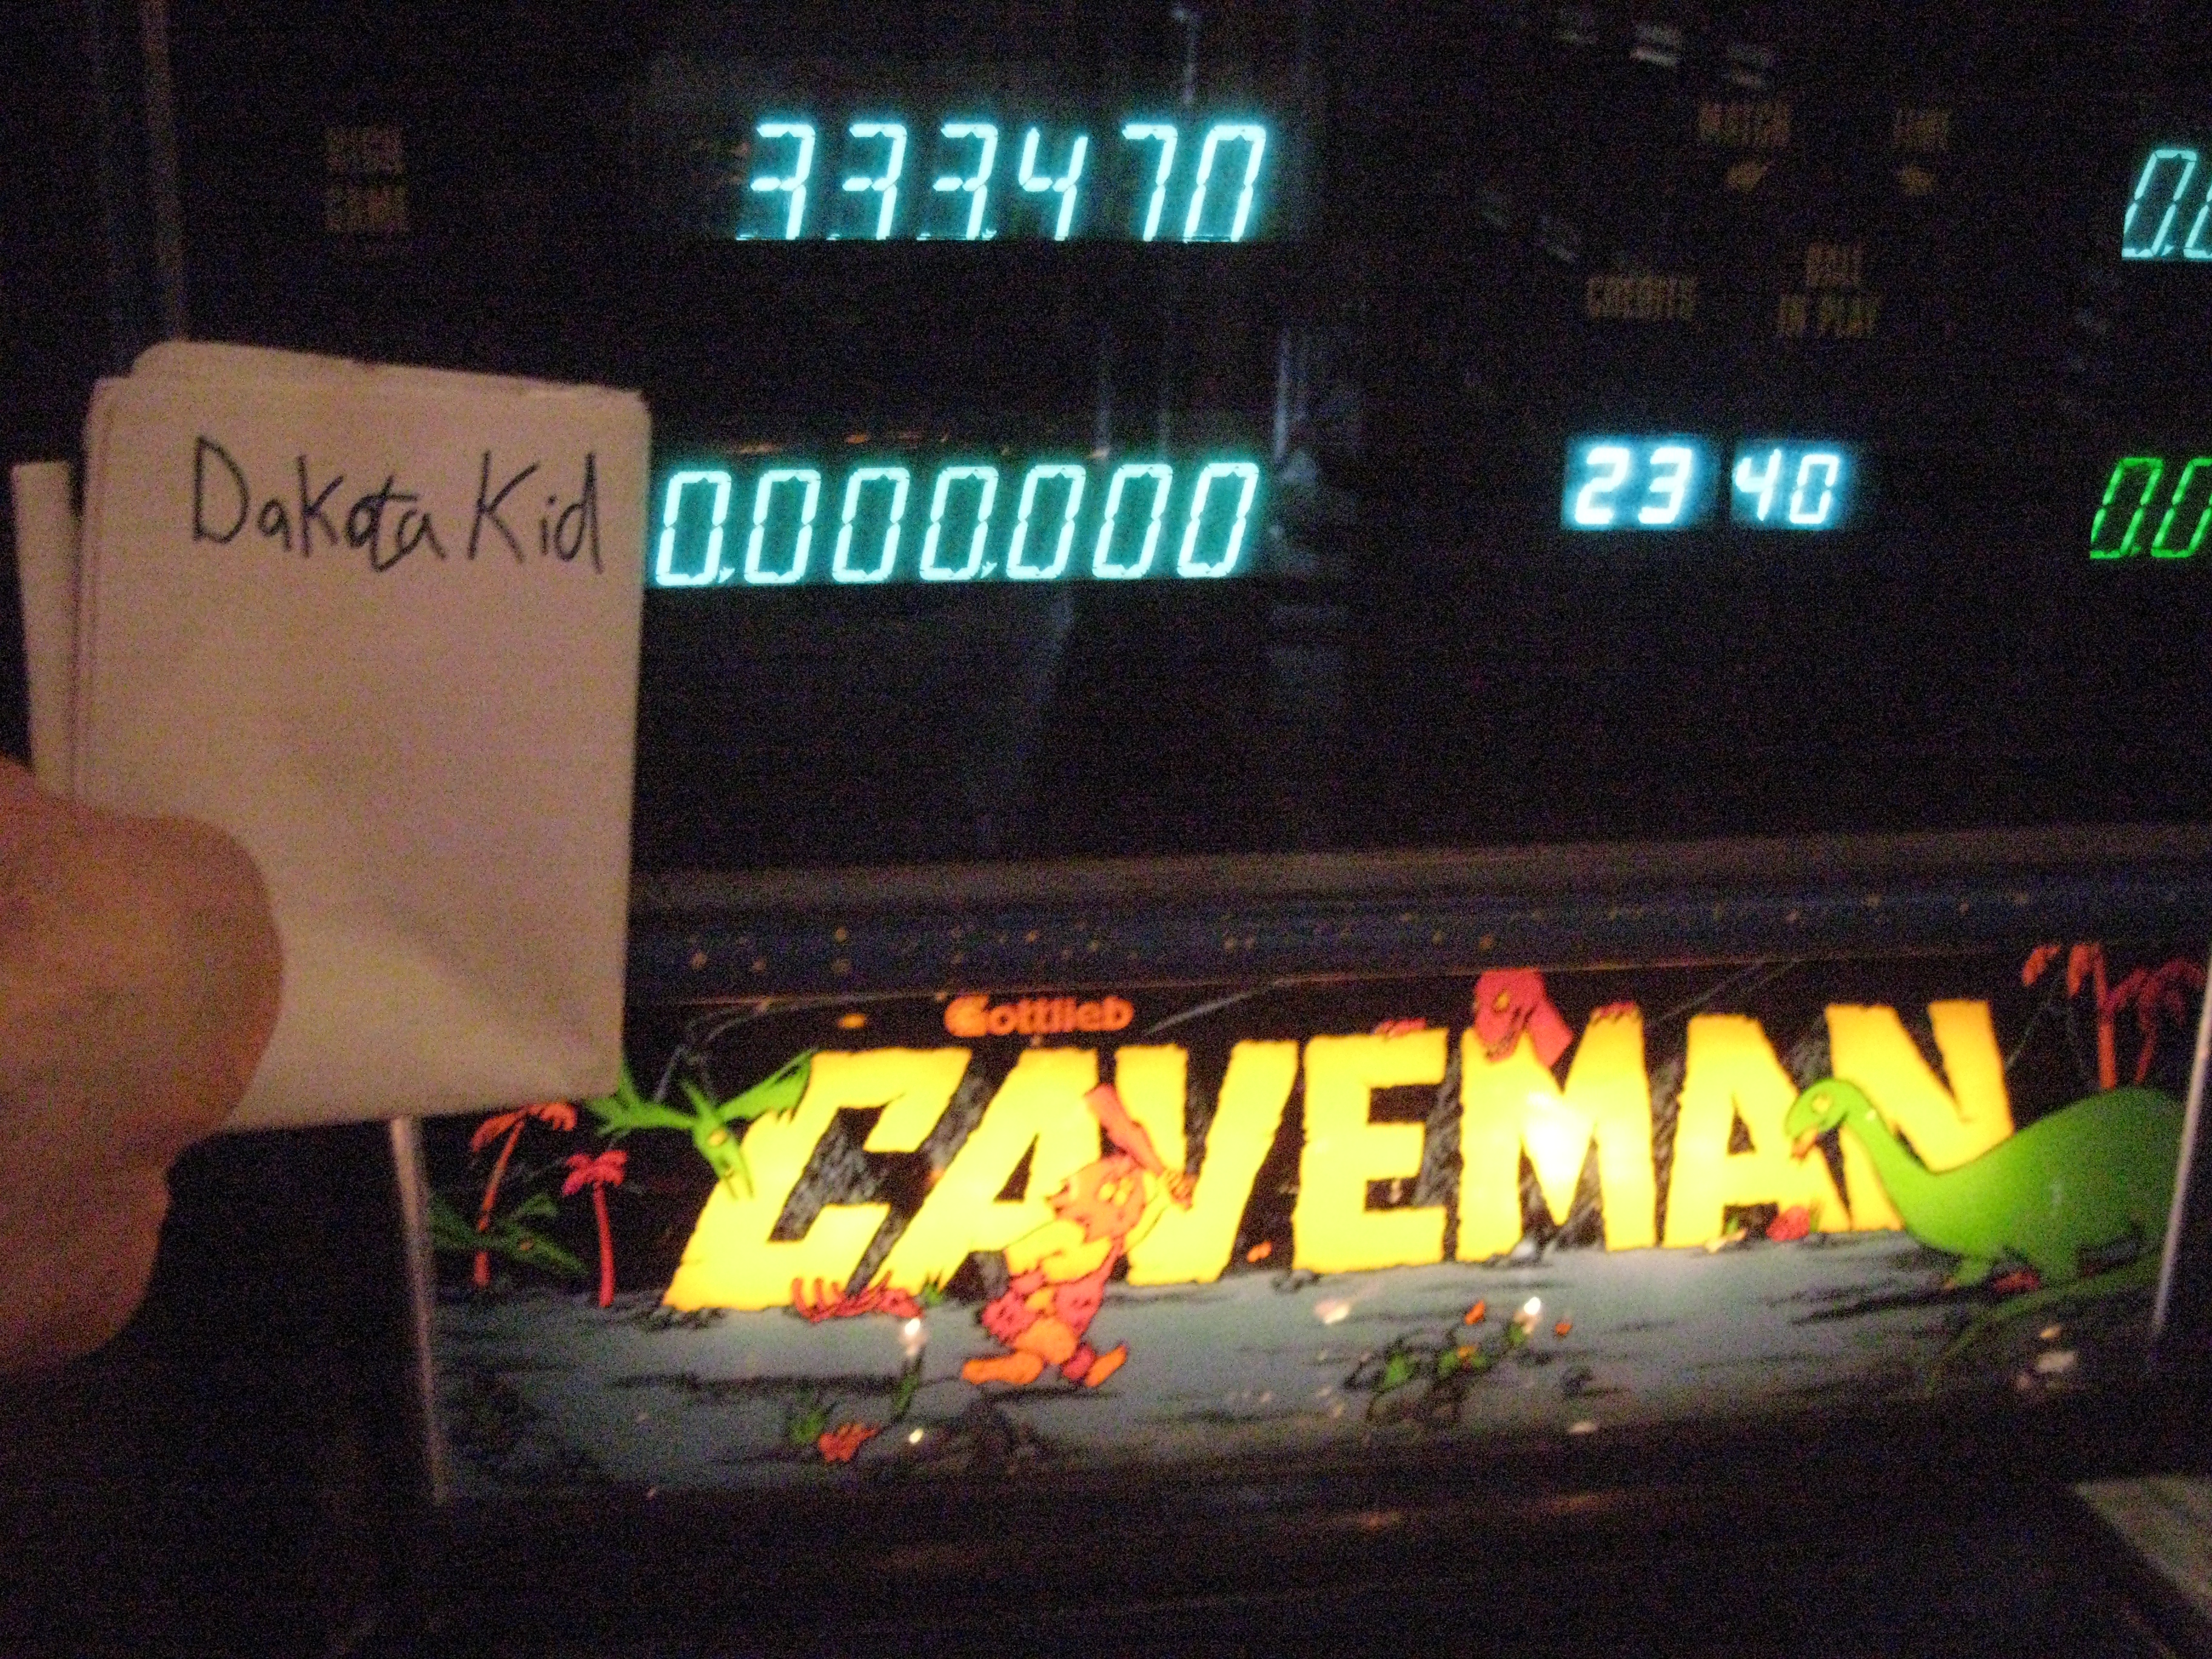 Caveman 333,470 points